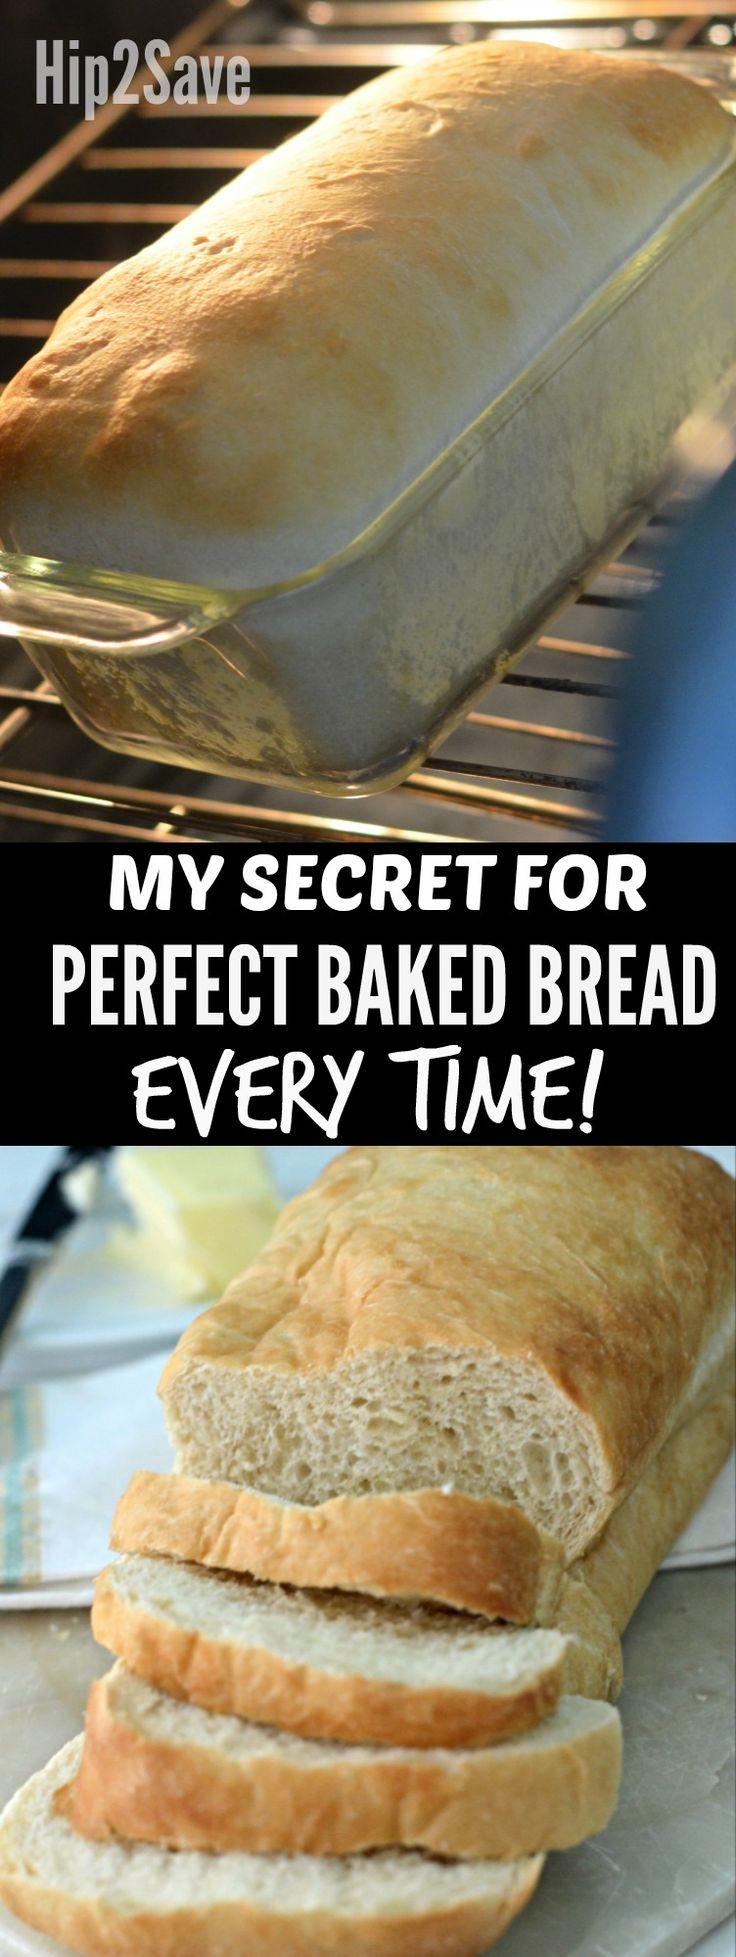 FRESH Baked Bread at Home for Around $1 Per Loaf? It's True…